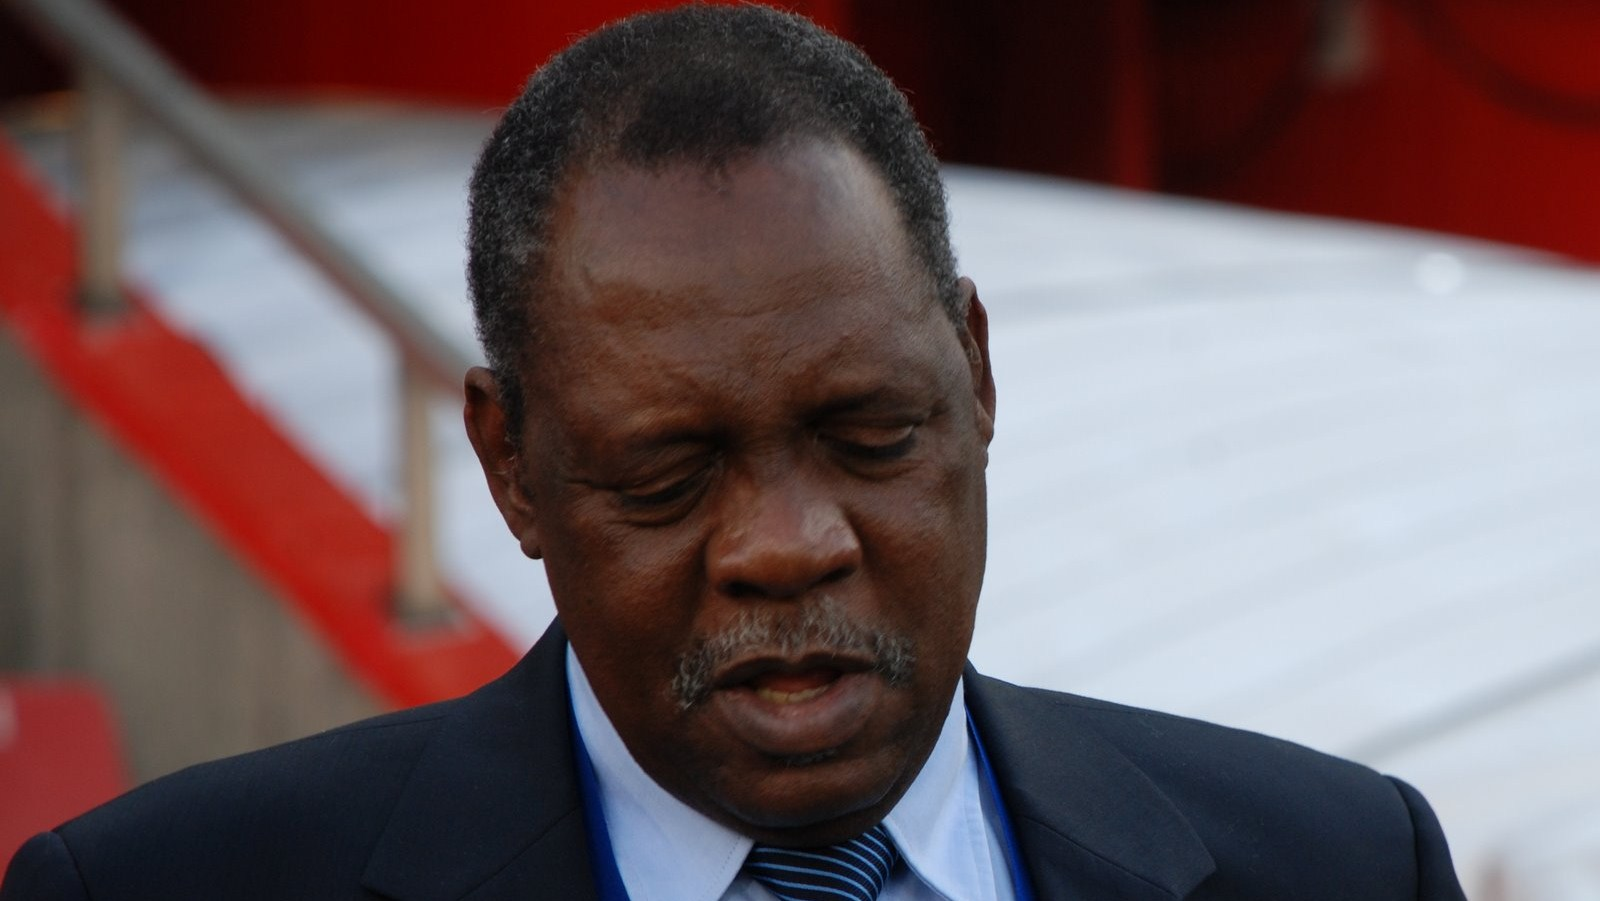 Issa Hayatou, President of the African Football Confederation